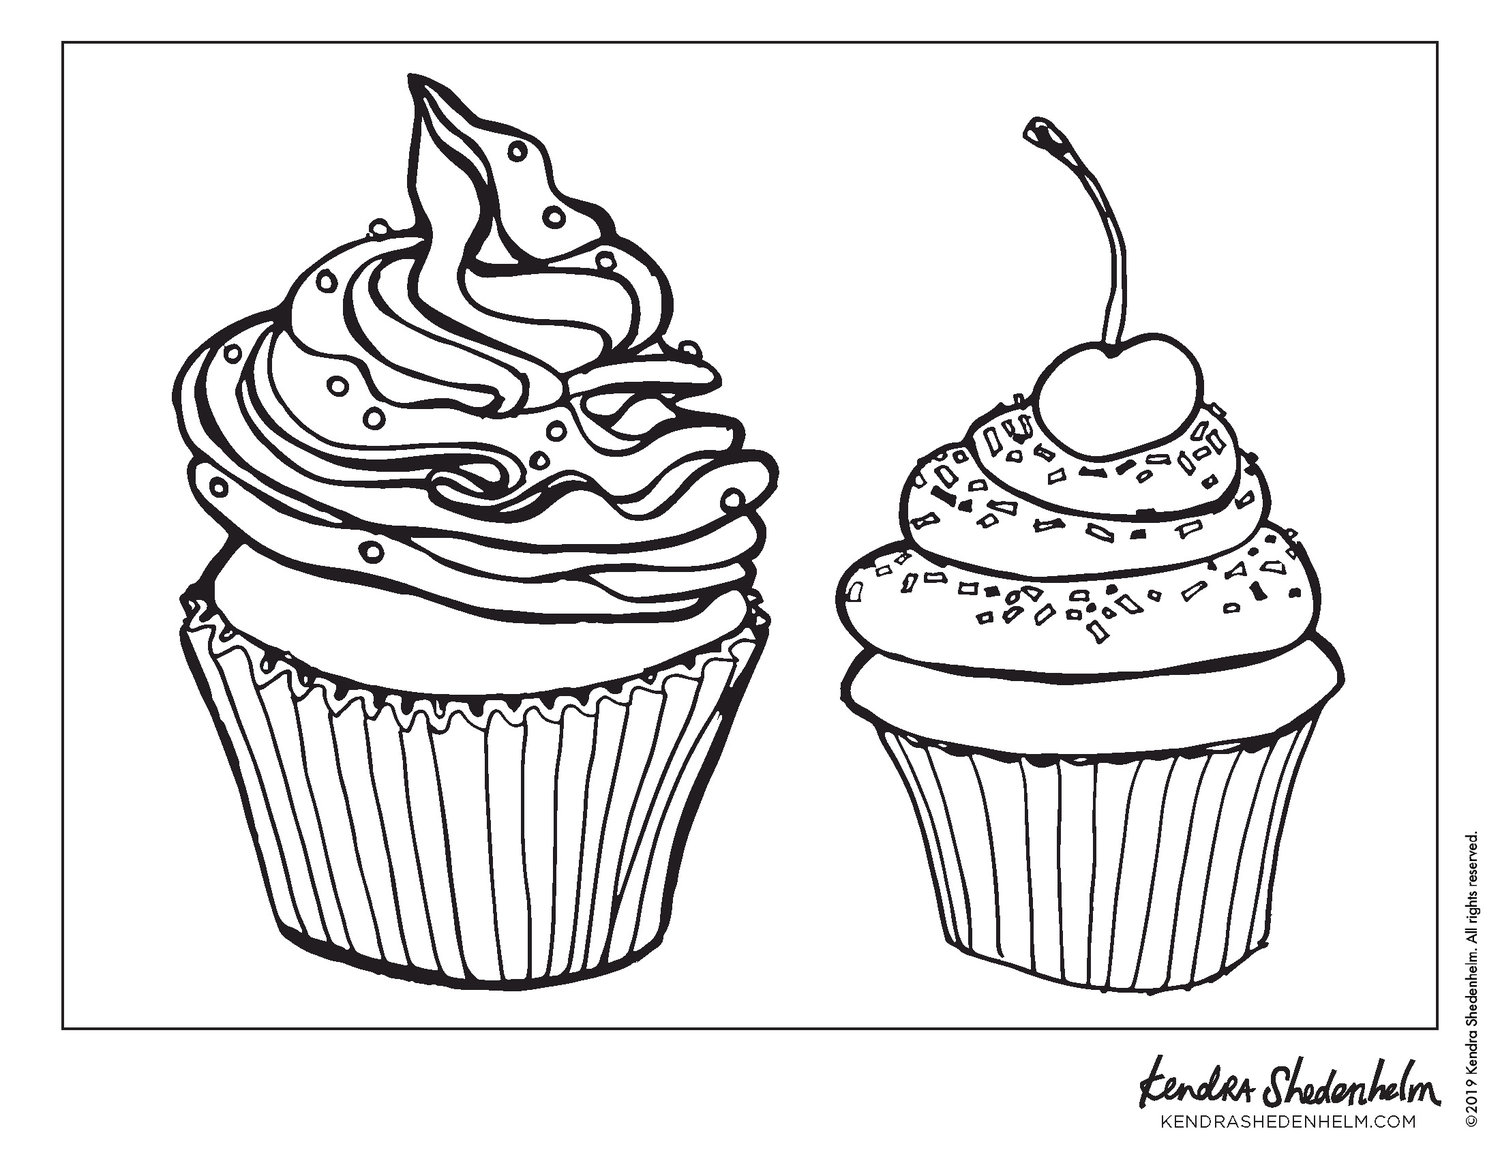 Cute Cupcake Coloring Page • FREE Printable PDF from PrimaryGames | 1159x1500